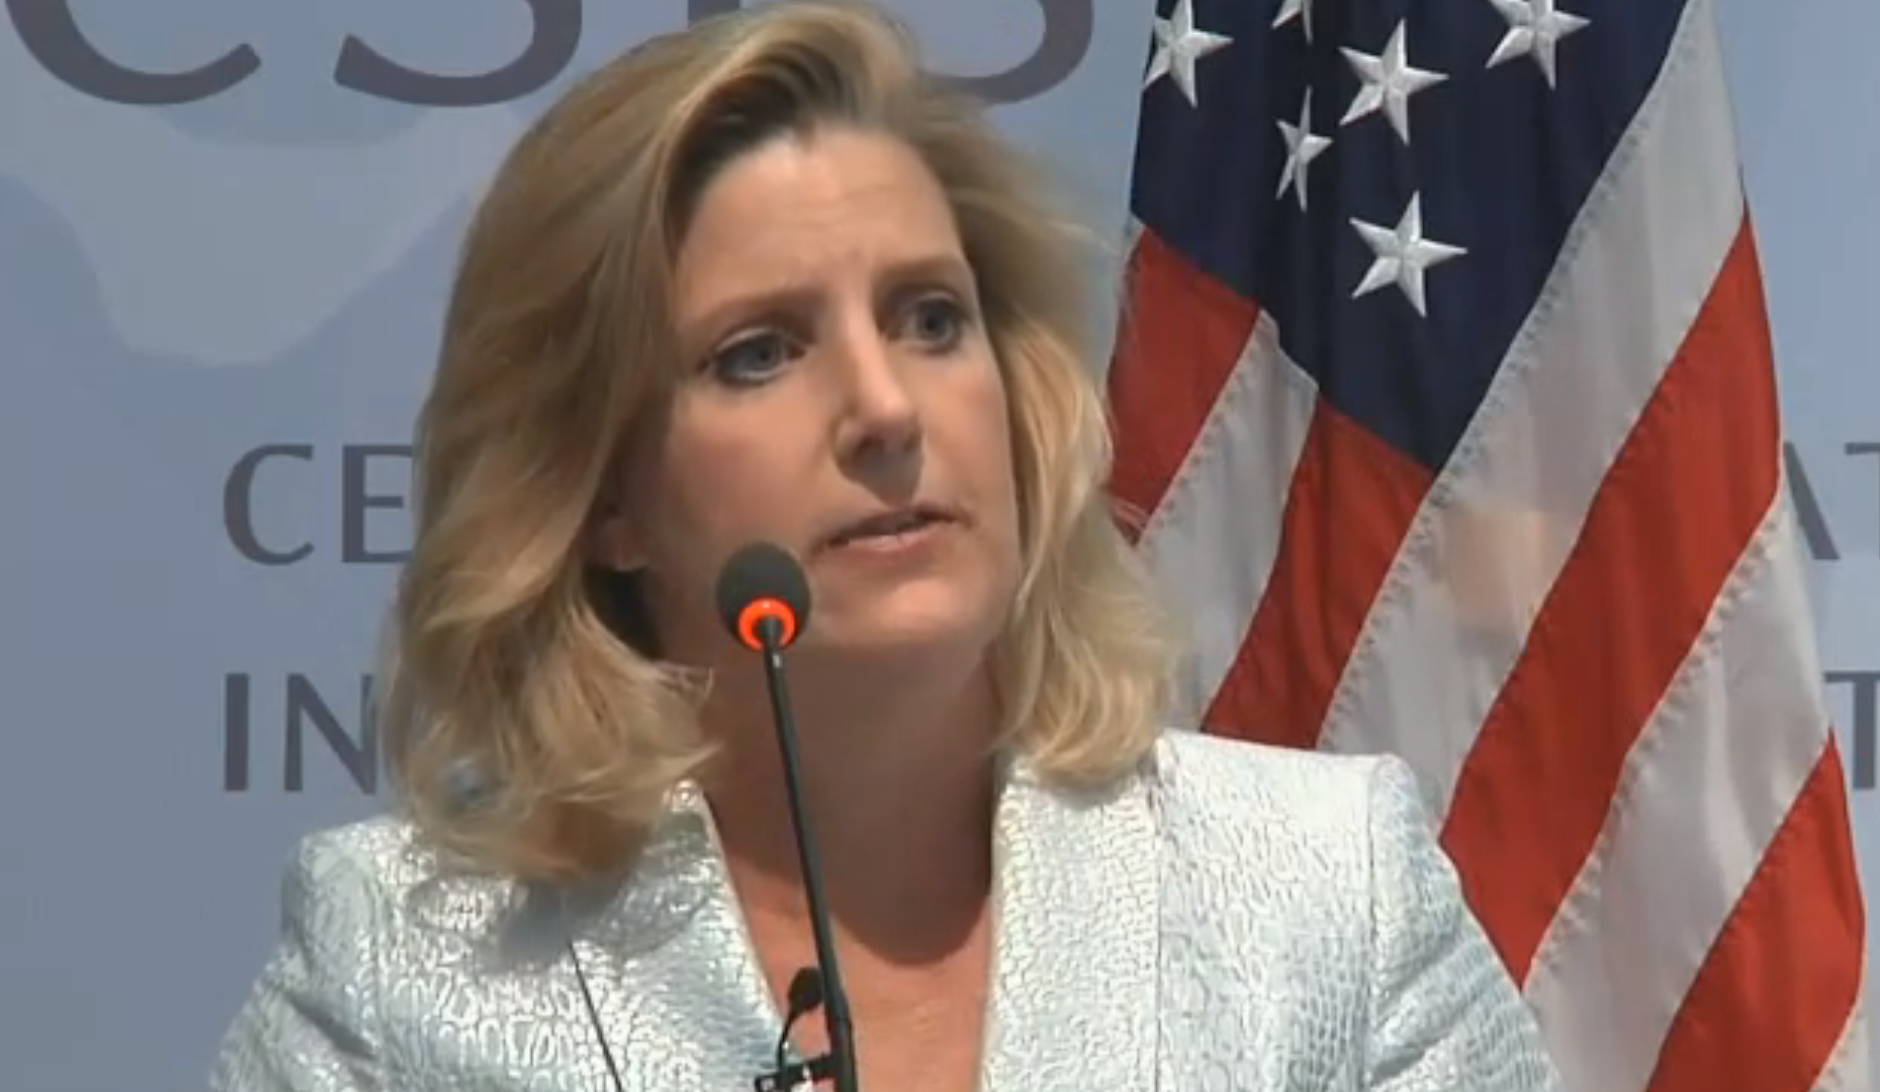 Under Secretary of Defense for Policy on July 13, 2015 at the Center for Strategic and International Studies. CSIS Screengrab